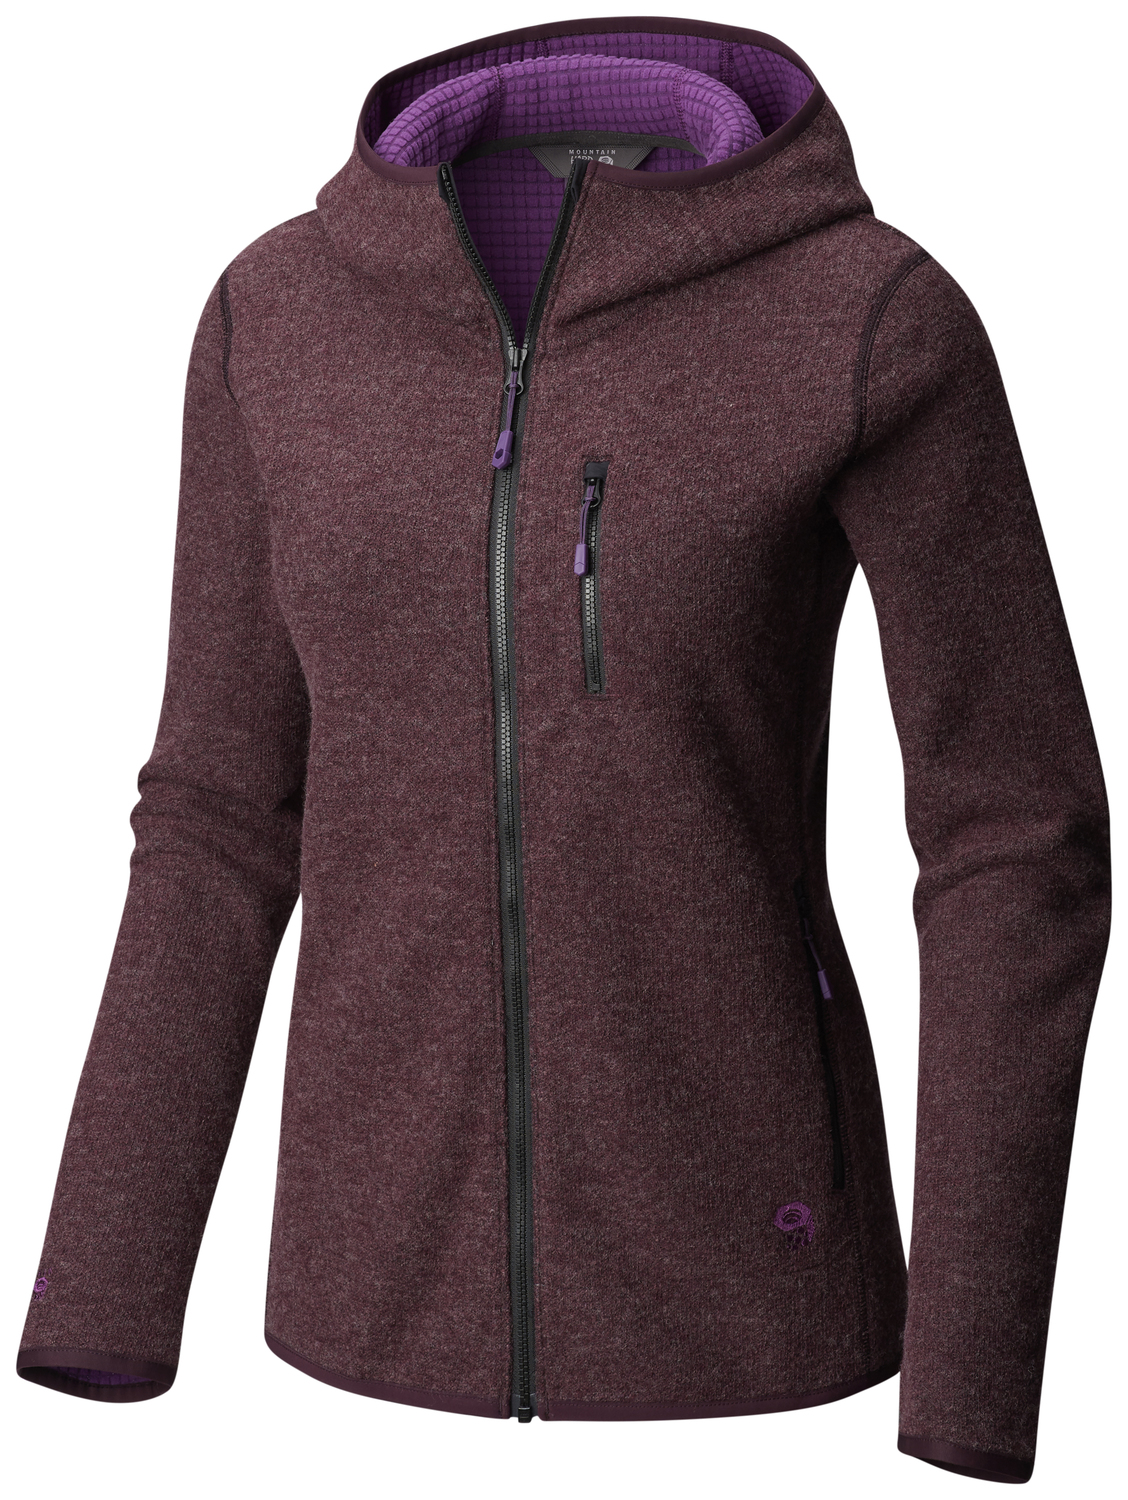 Mountain Hardwear Women's Hatcher™ Full Zip Hoody | Jerseys